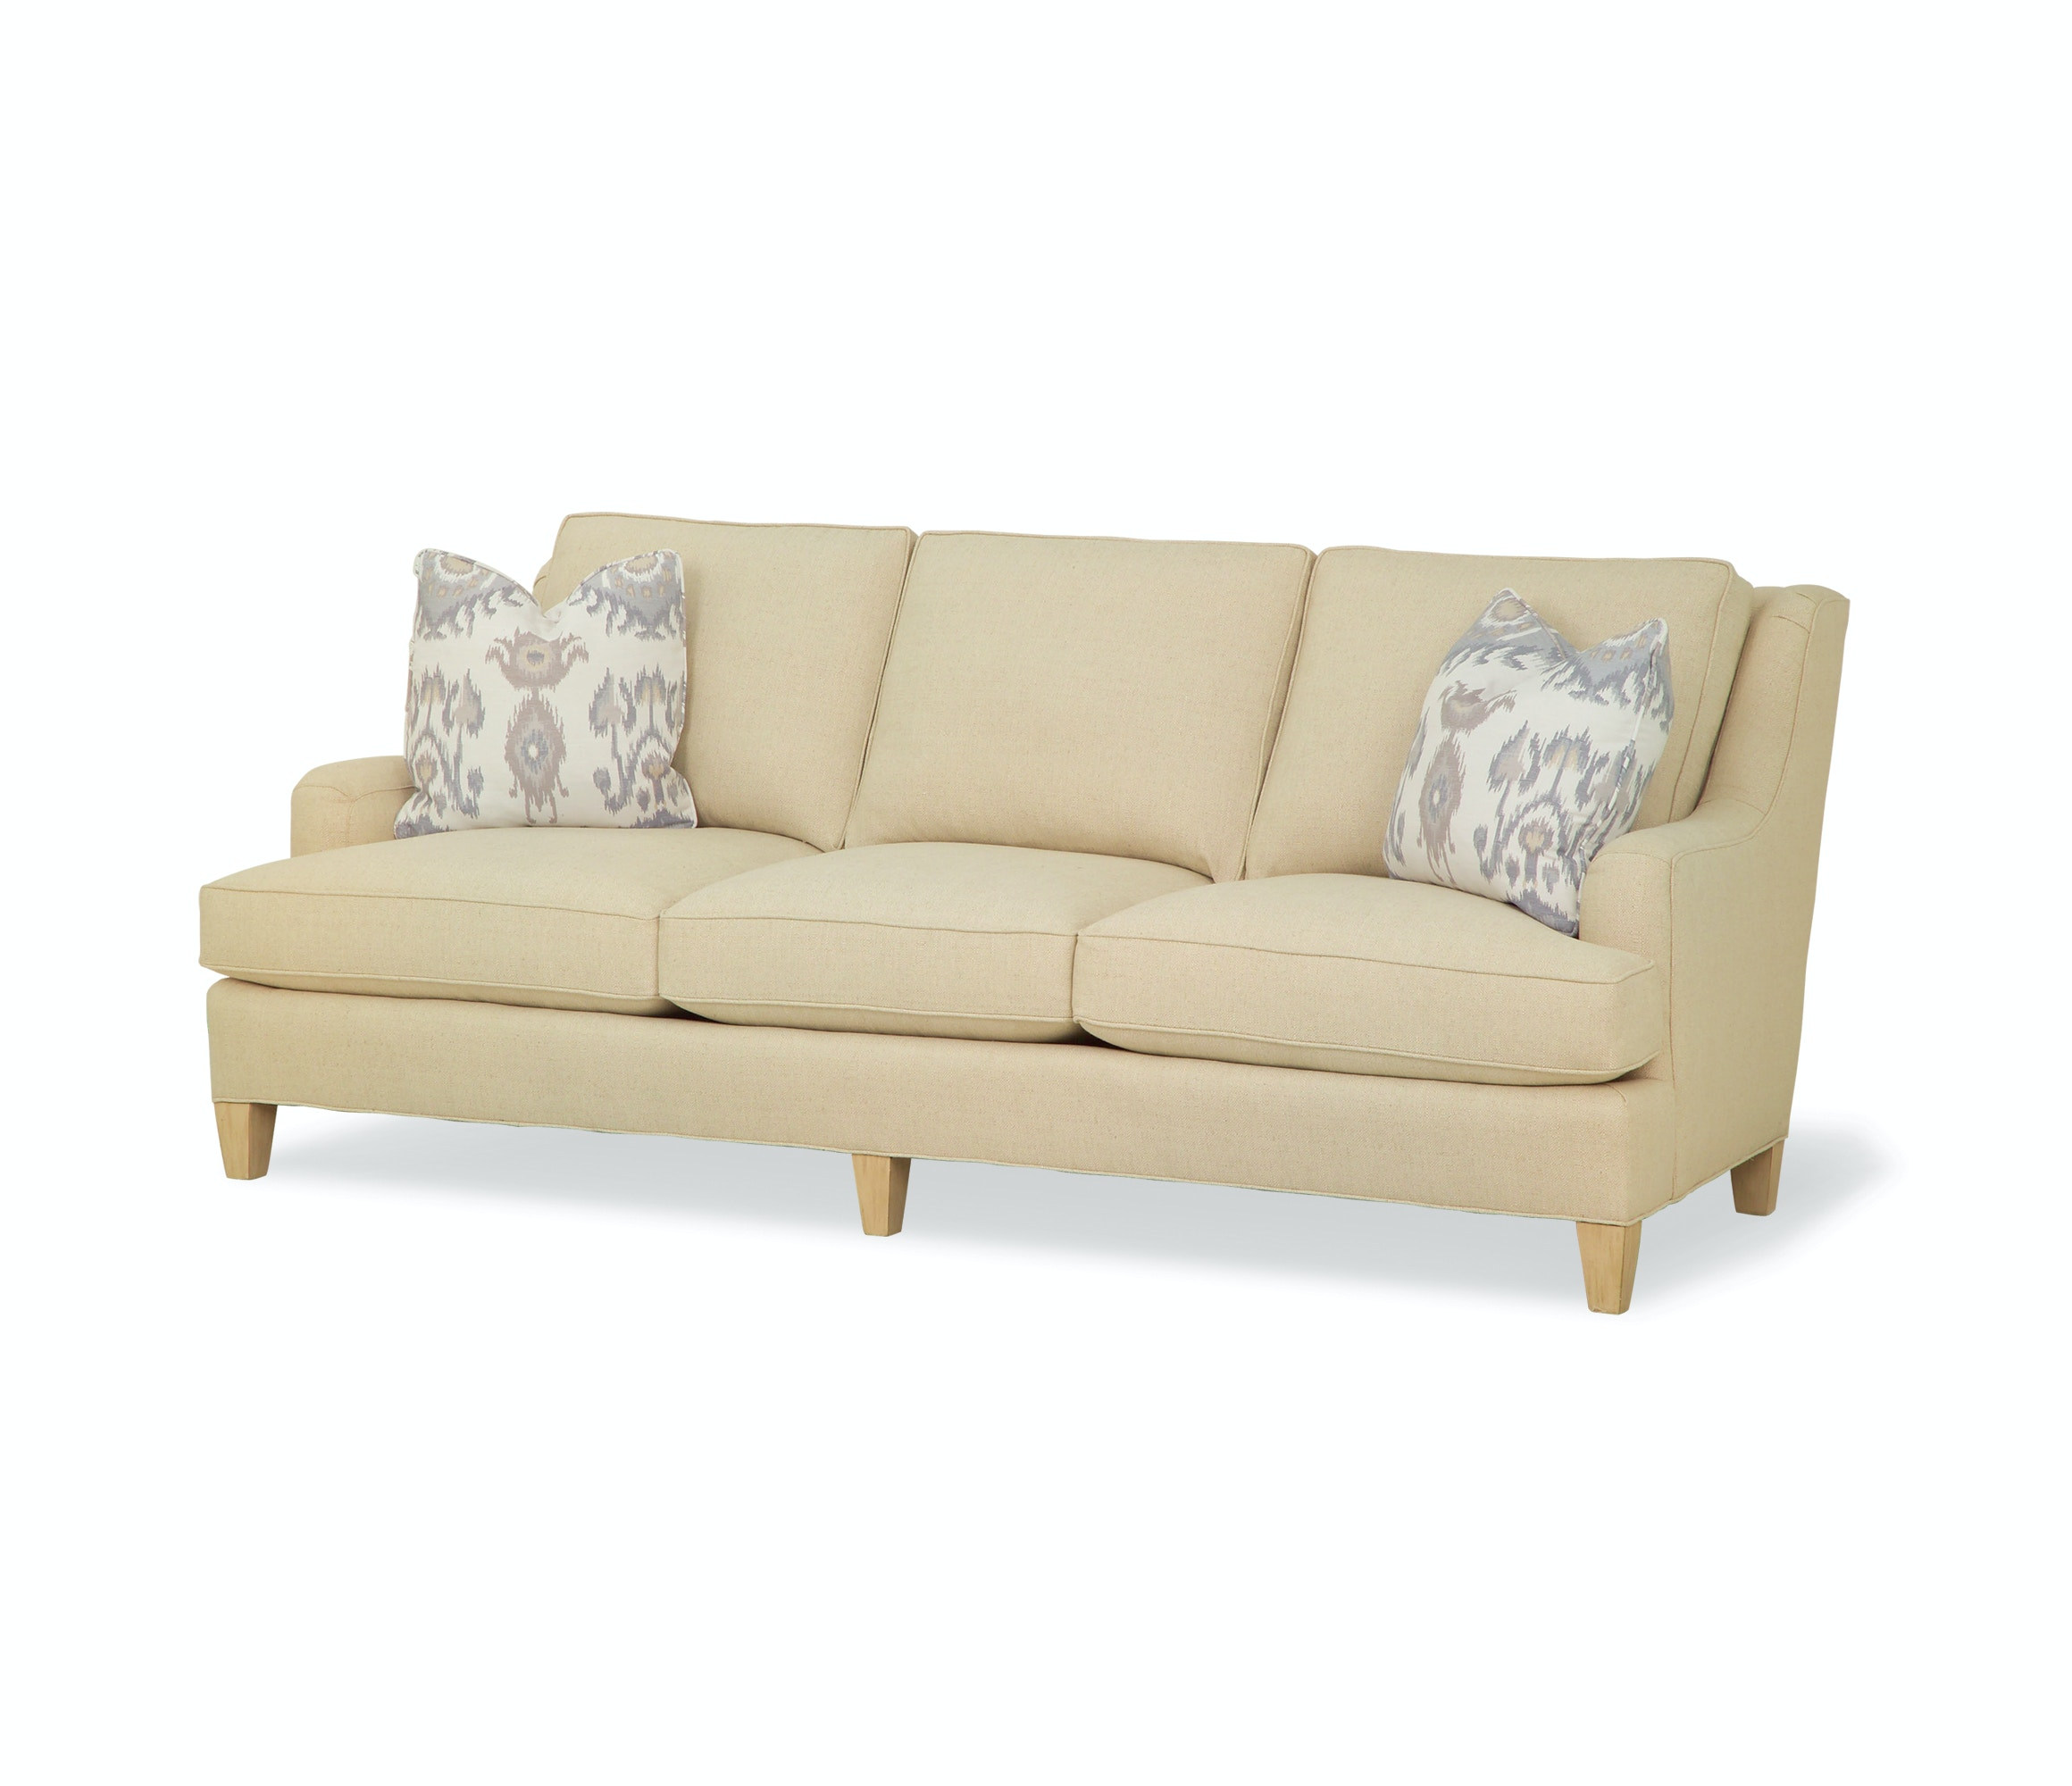 Taylor King Furniture Living Room Talulah Mini Sofa 1037 09